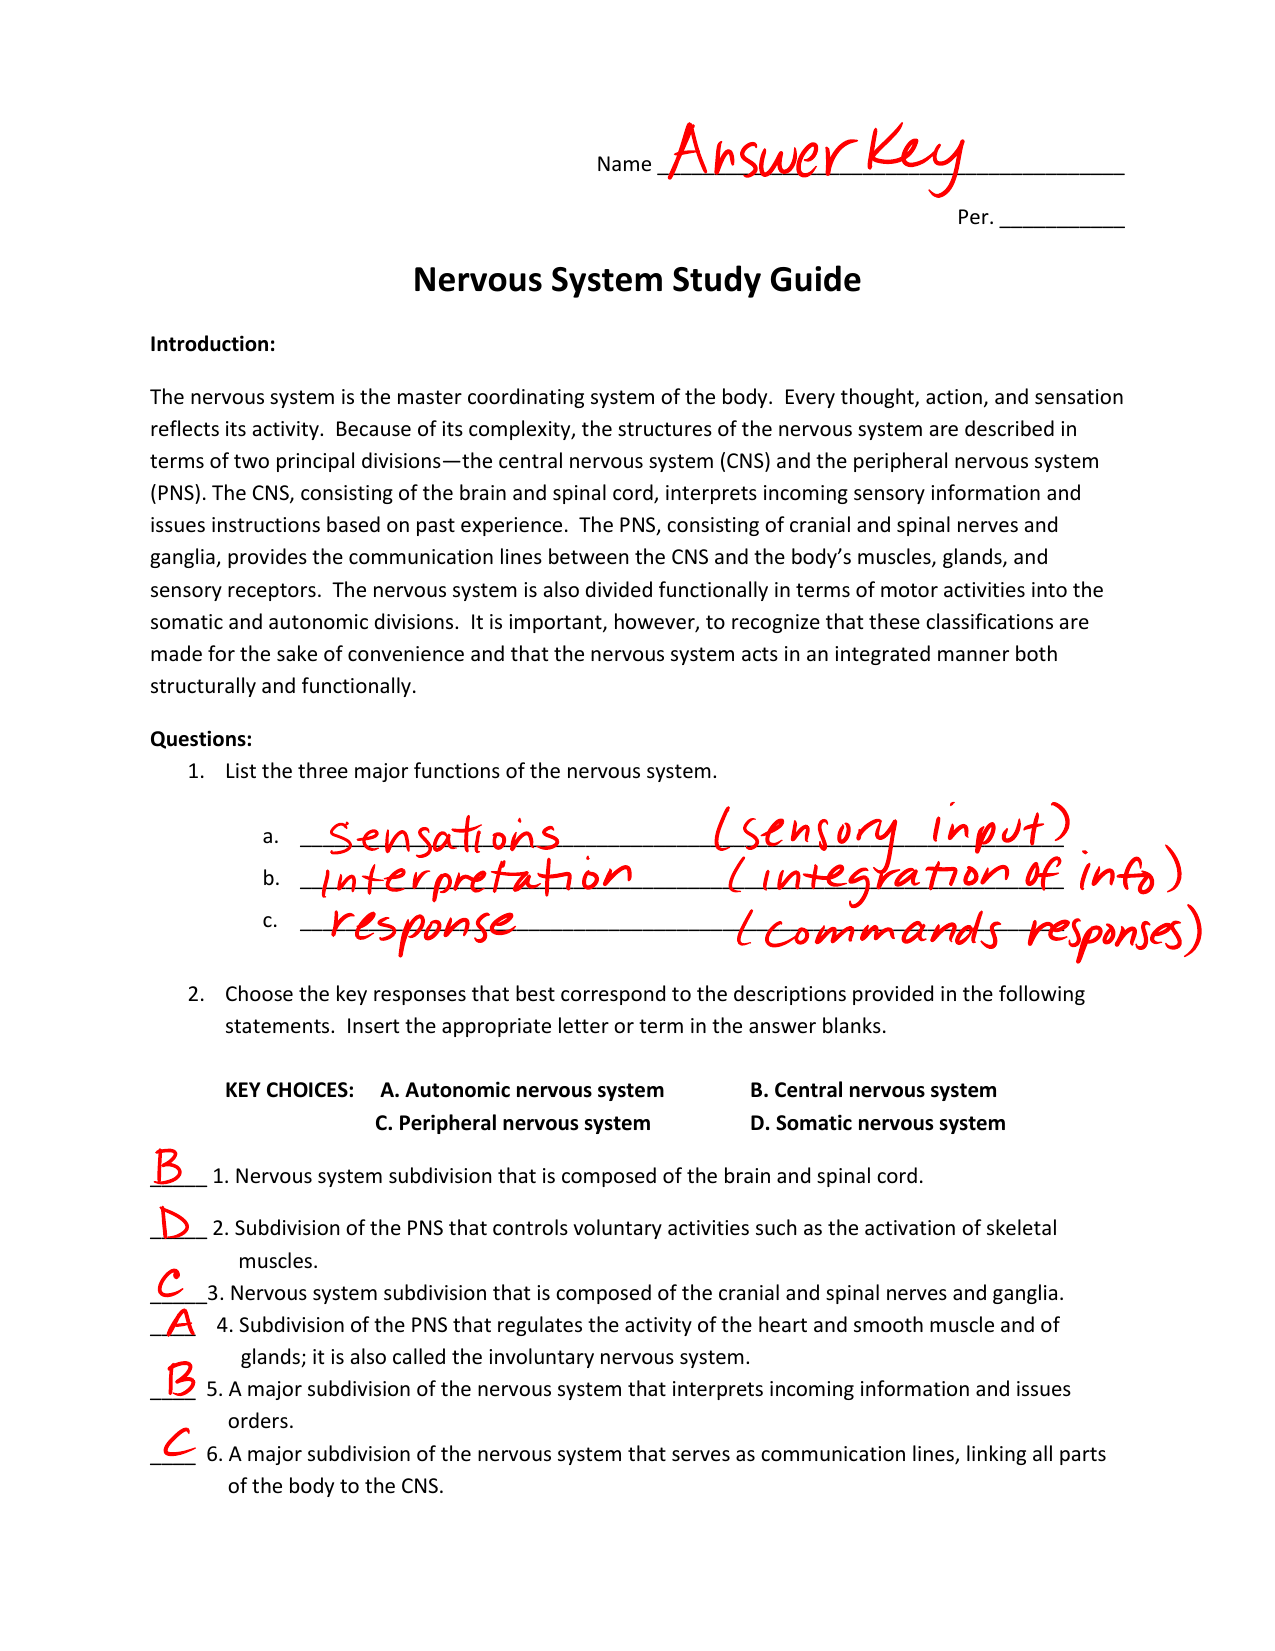 Nervous System Study Guide